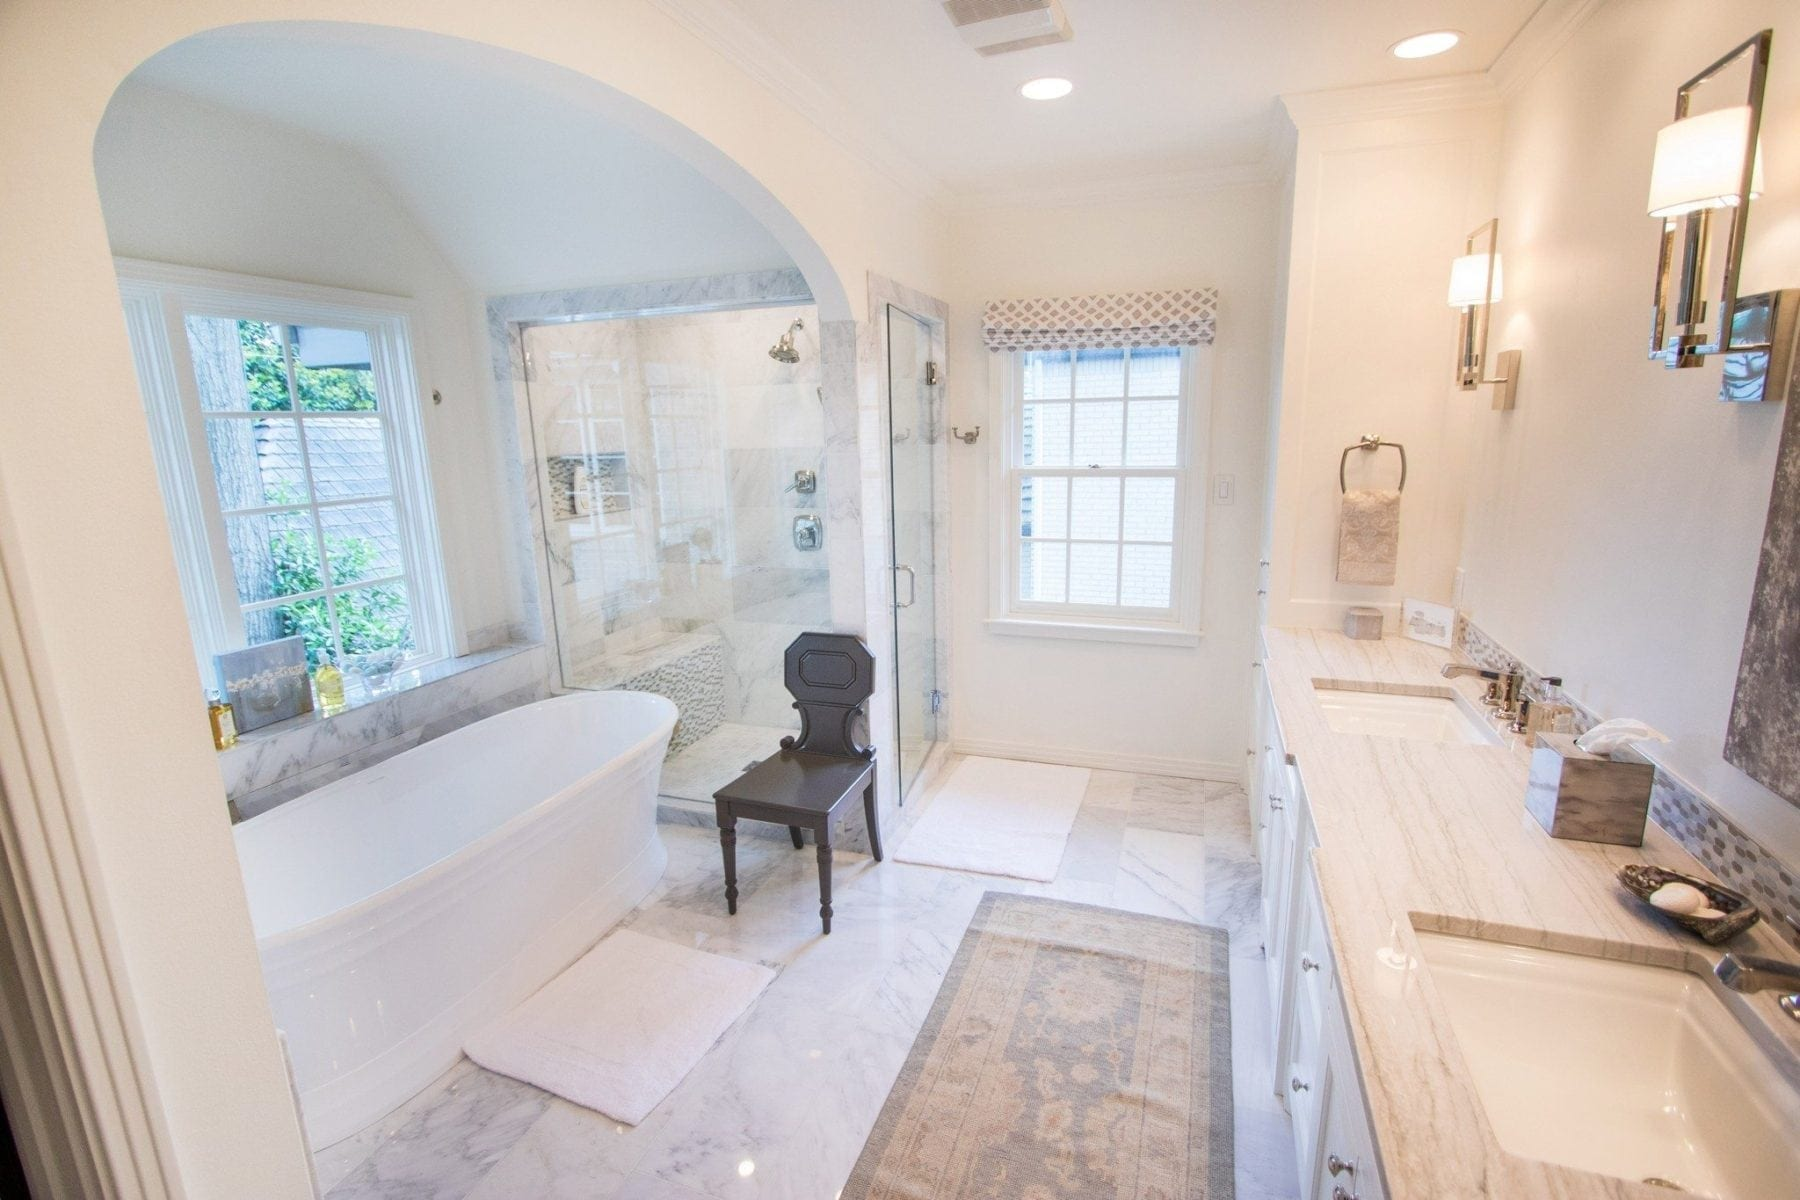 5 star kitchen bathroom remodeling services dallas tx Bathroom remodeling services